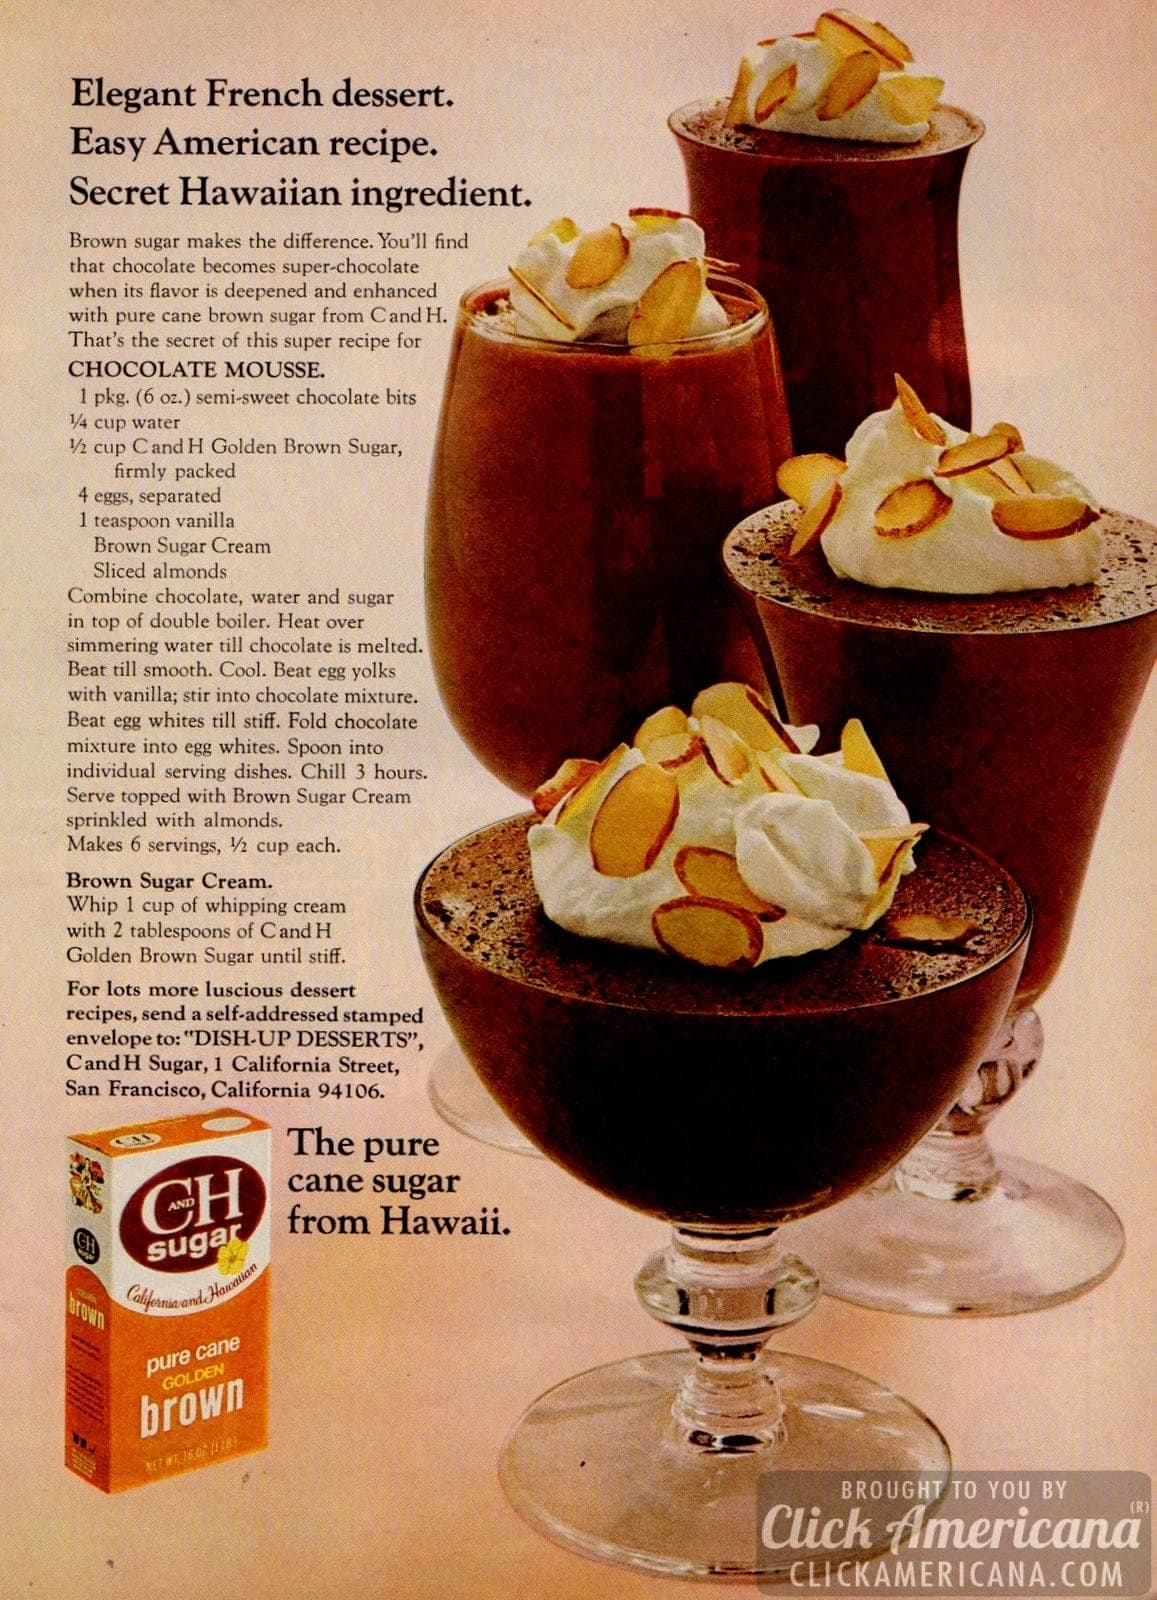 Chocolate Mousse with brown sugar (1972) - Click Americana